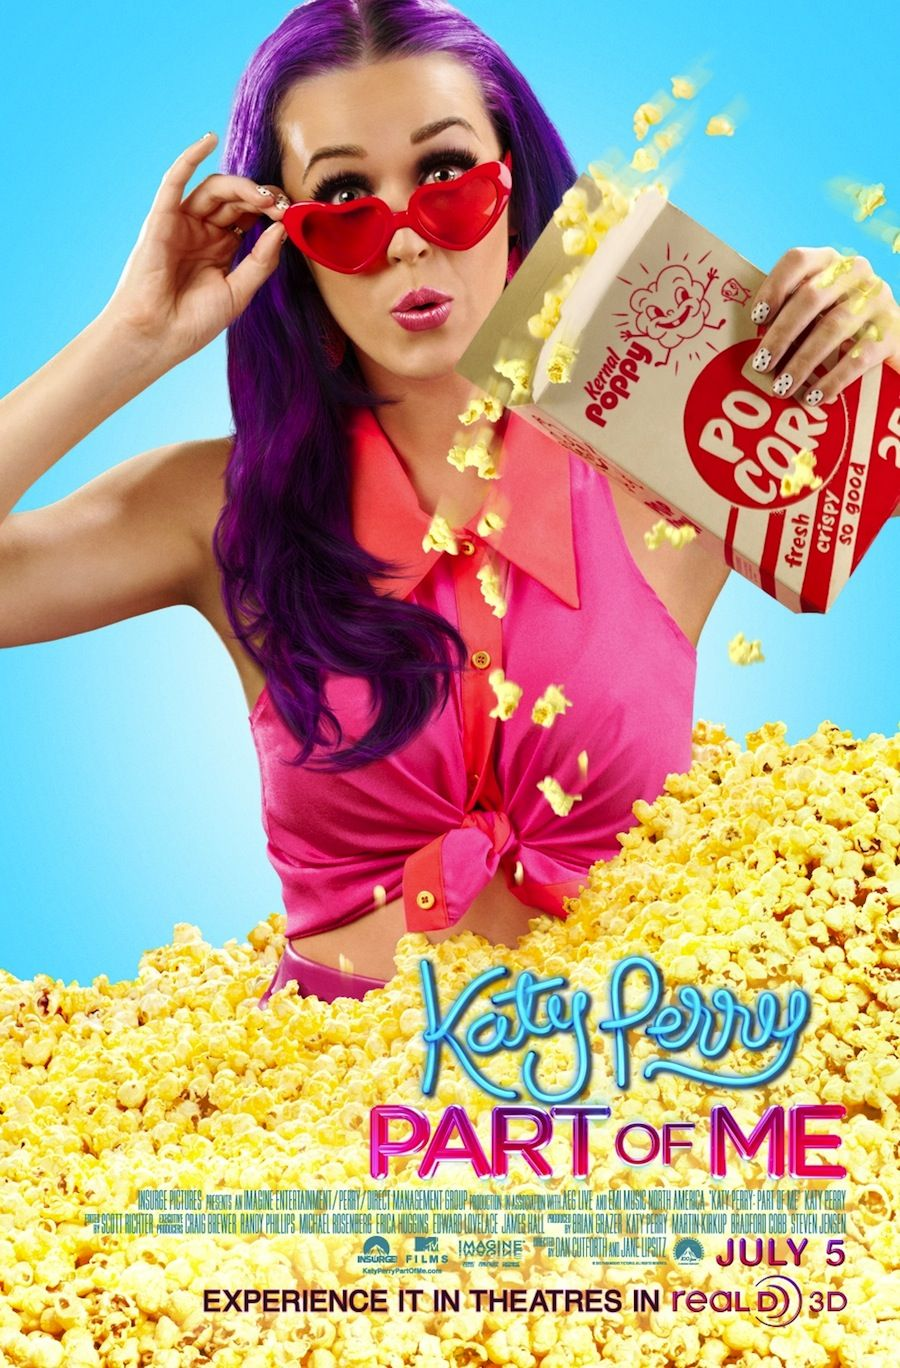 Katy Perry Part of Me poster.